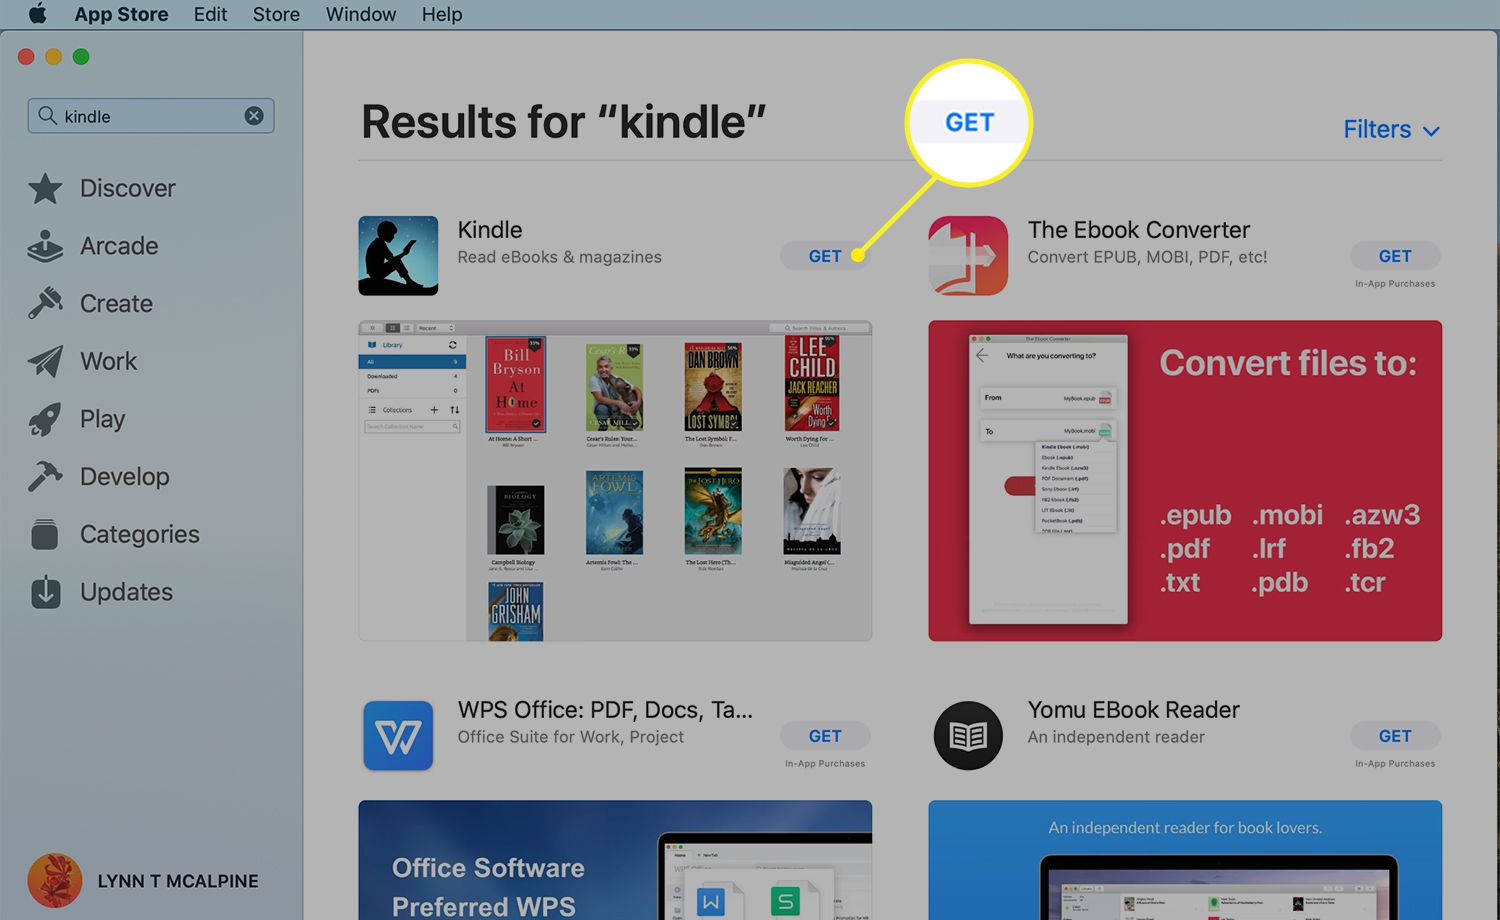 Kindle app in App Store with Get highlighted